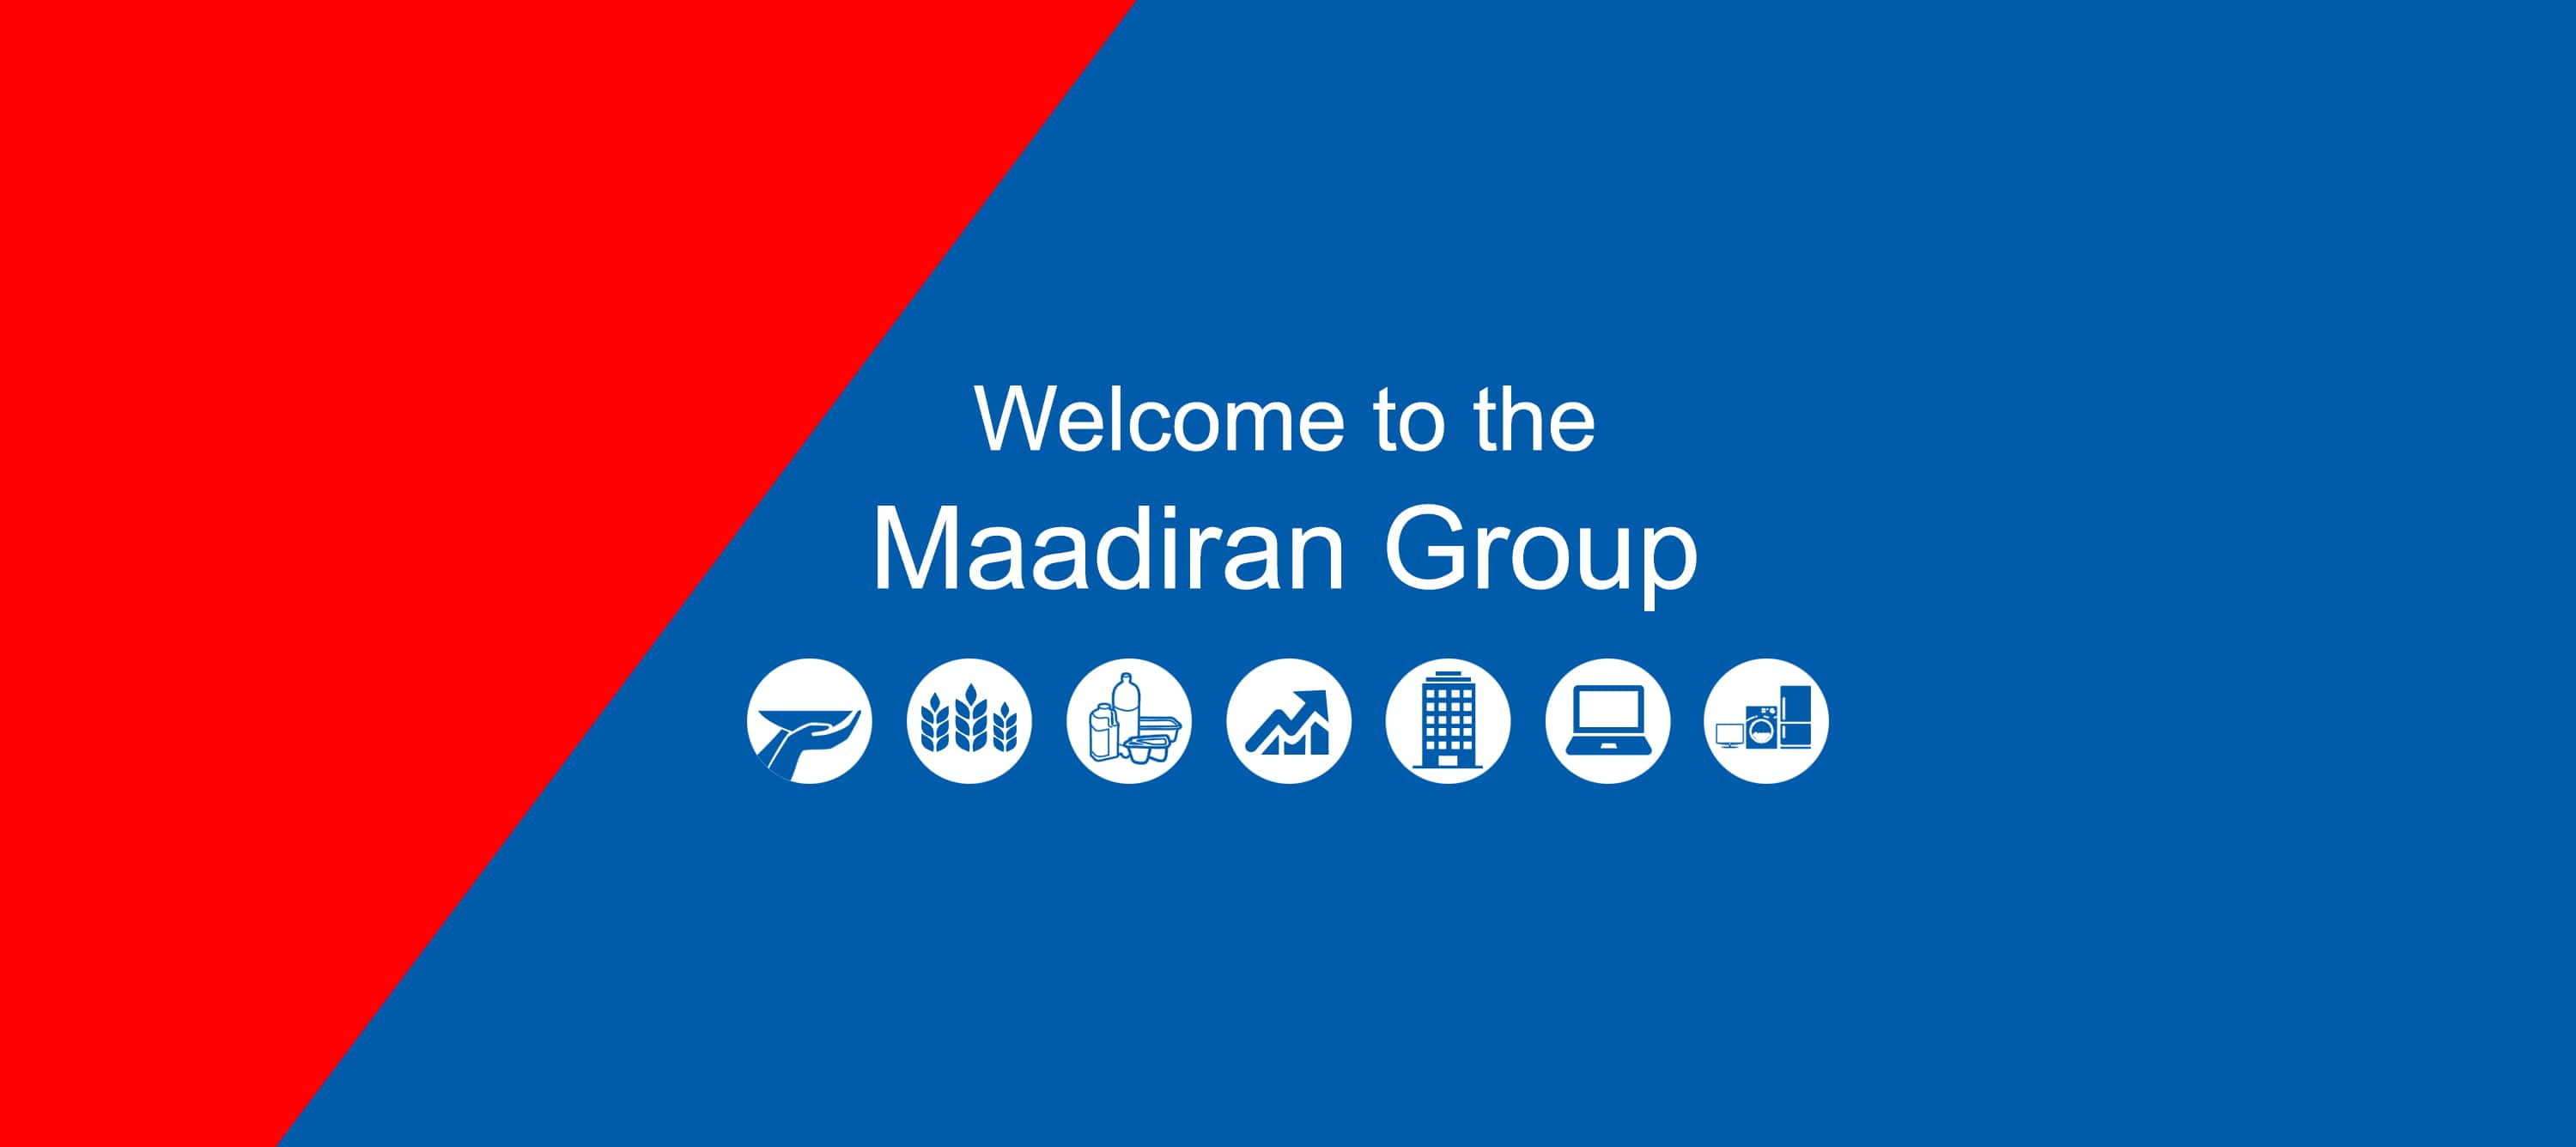 Welcome to the Maadiran Group